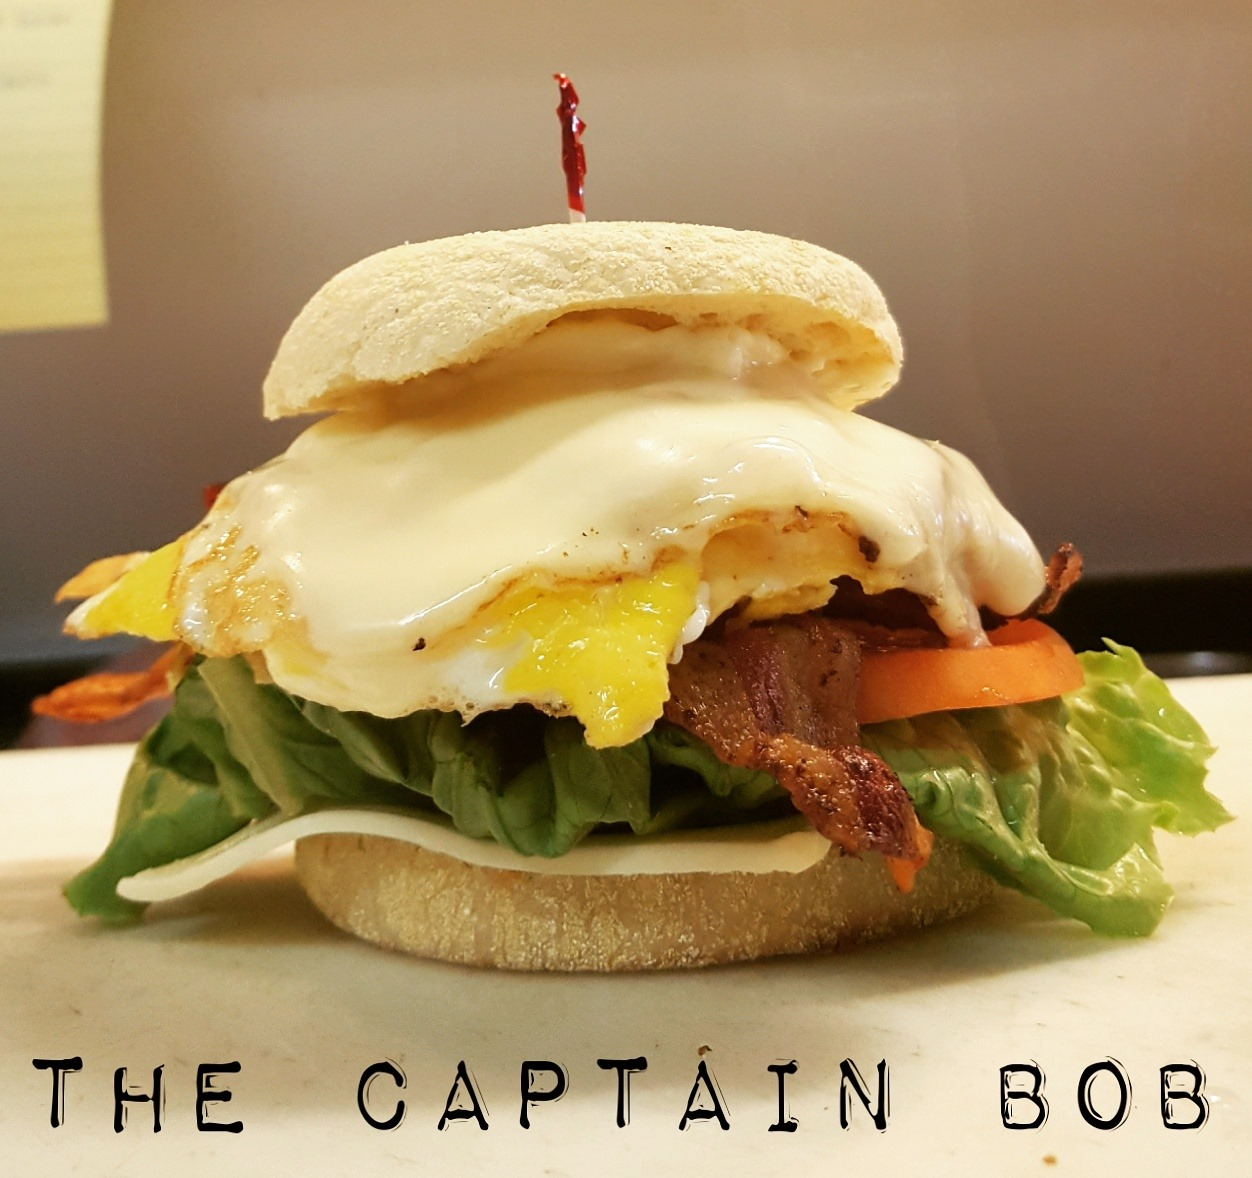 Captain Bob Sandwich: Our classic BLT served on an English muffin topped with two over-hard eggs and melted American cheese